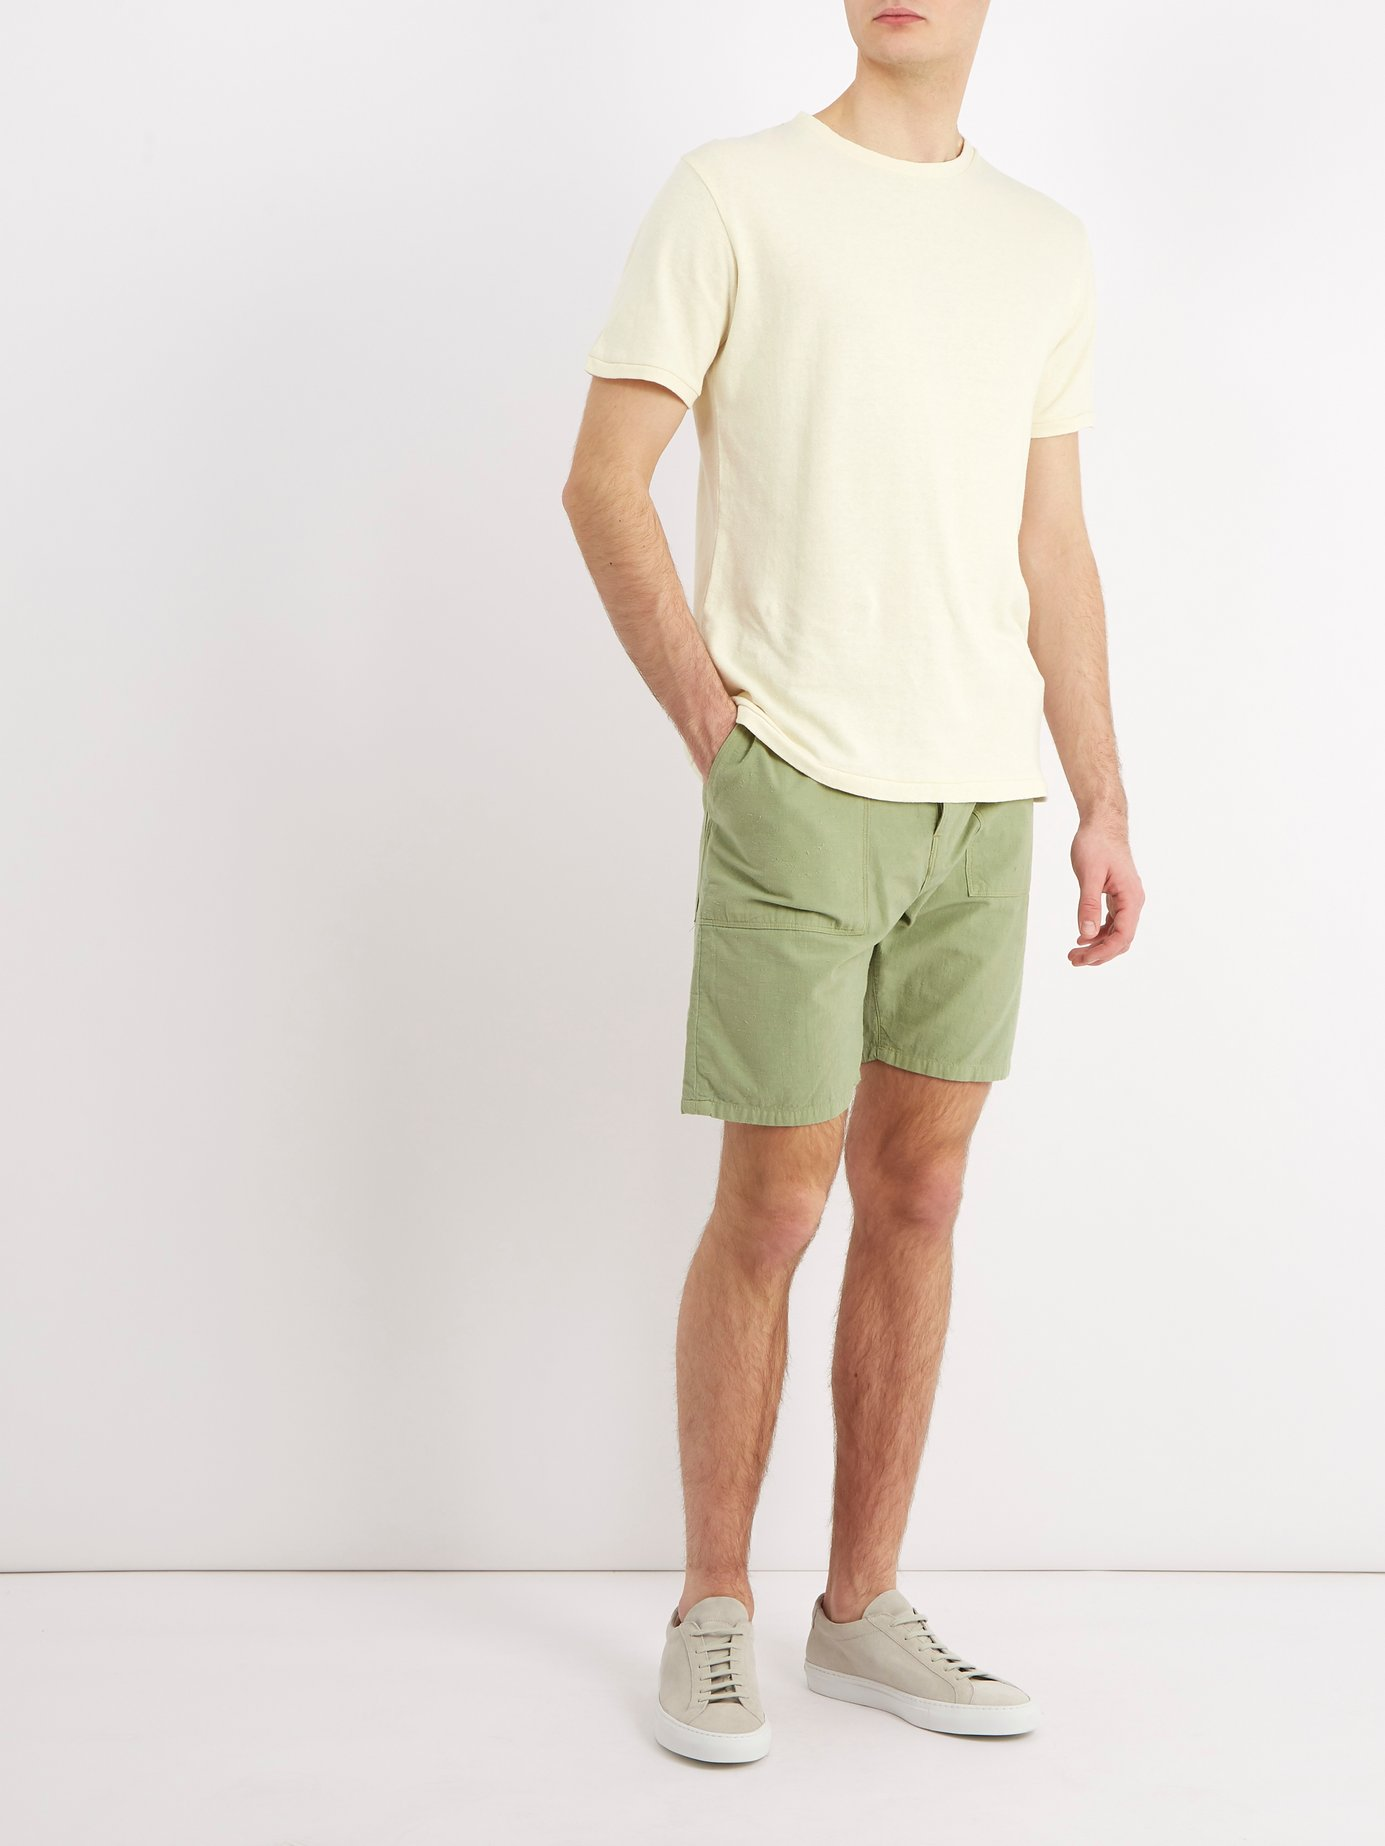 outfit_1197751_1.jpg